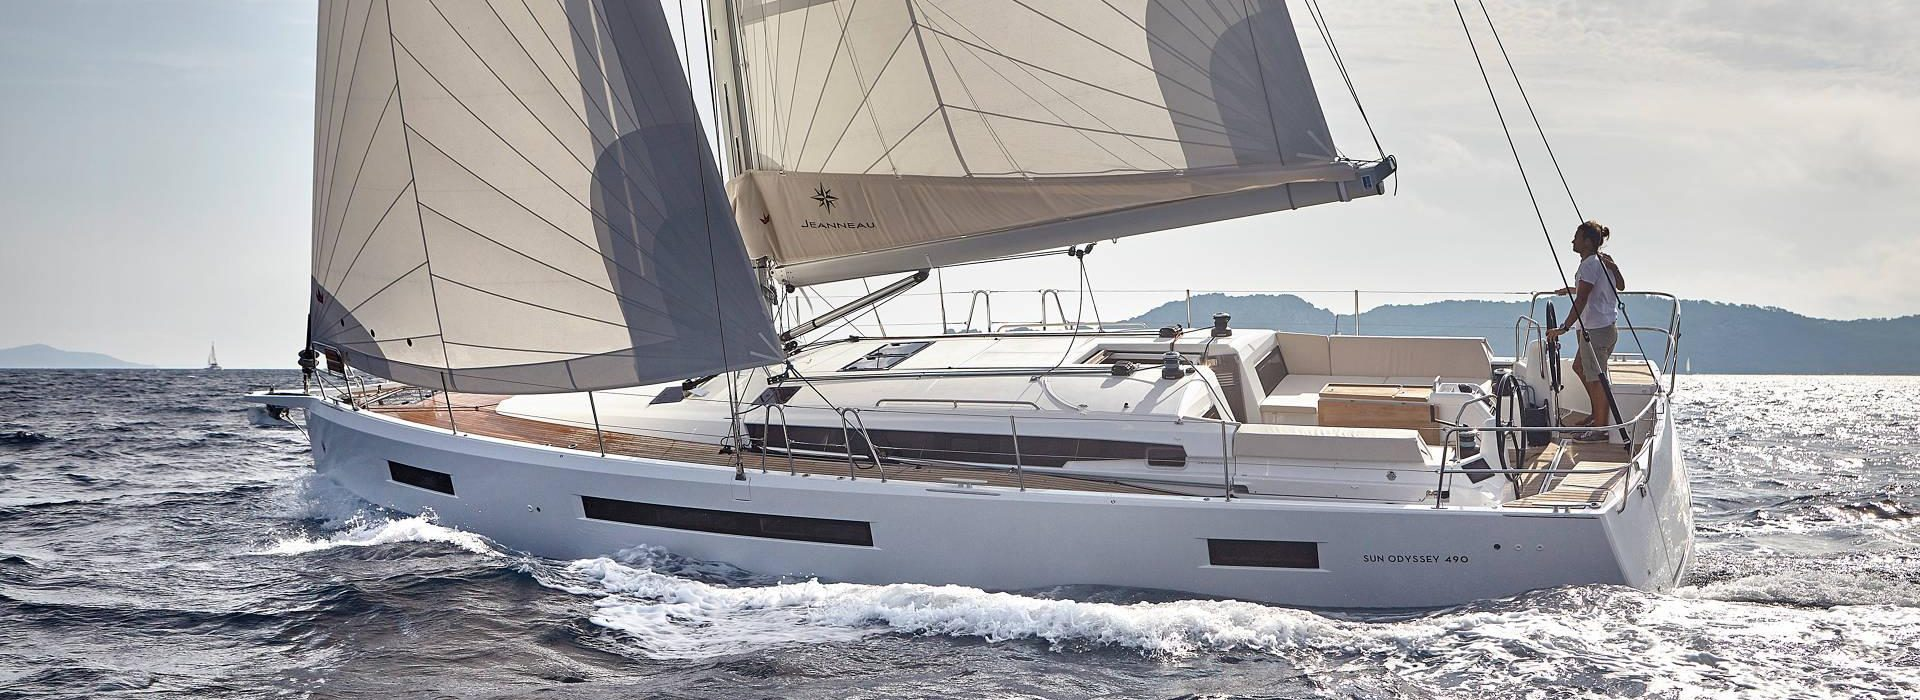 Jeanneau Sun-odyssey 490 underway full sail